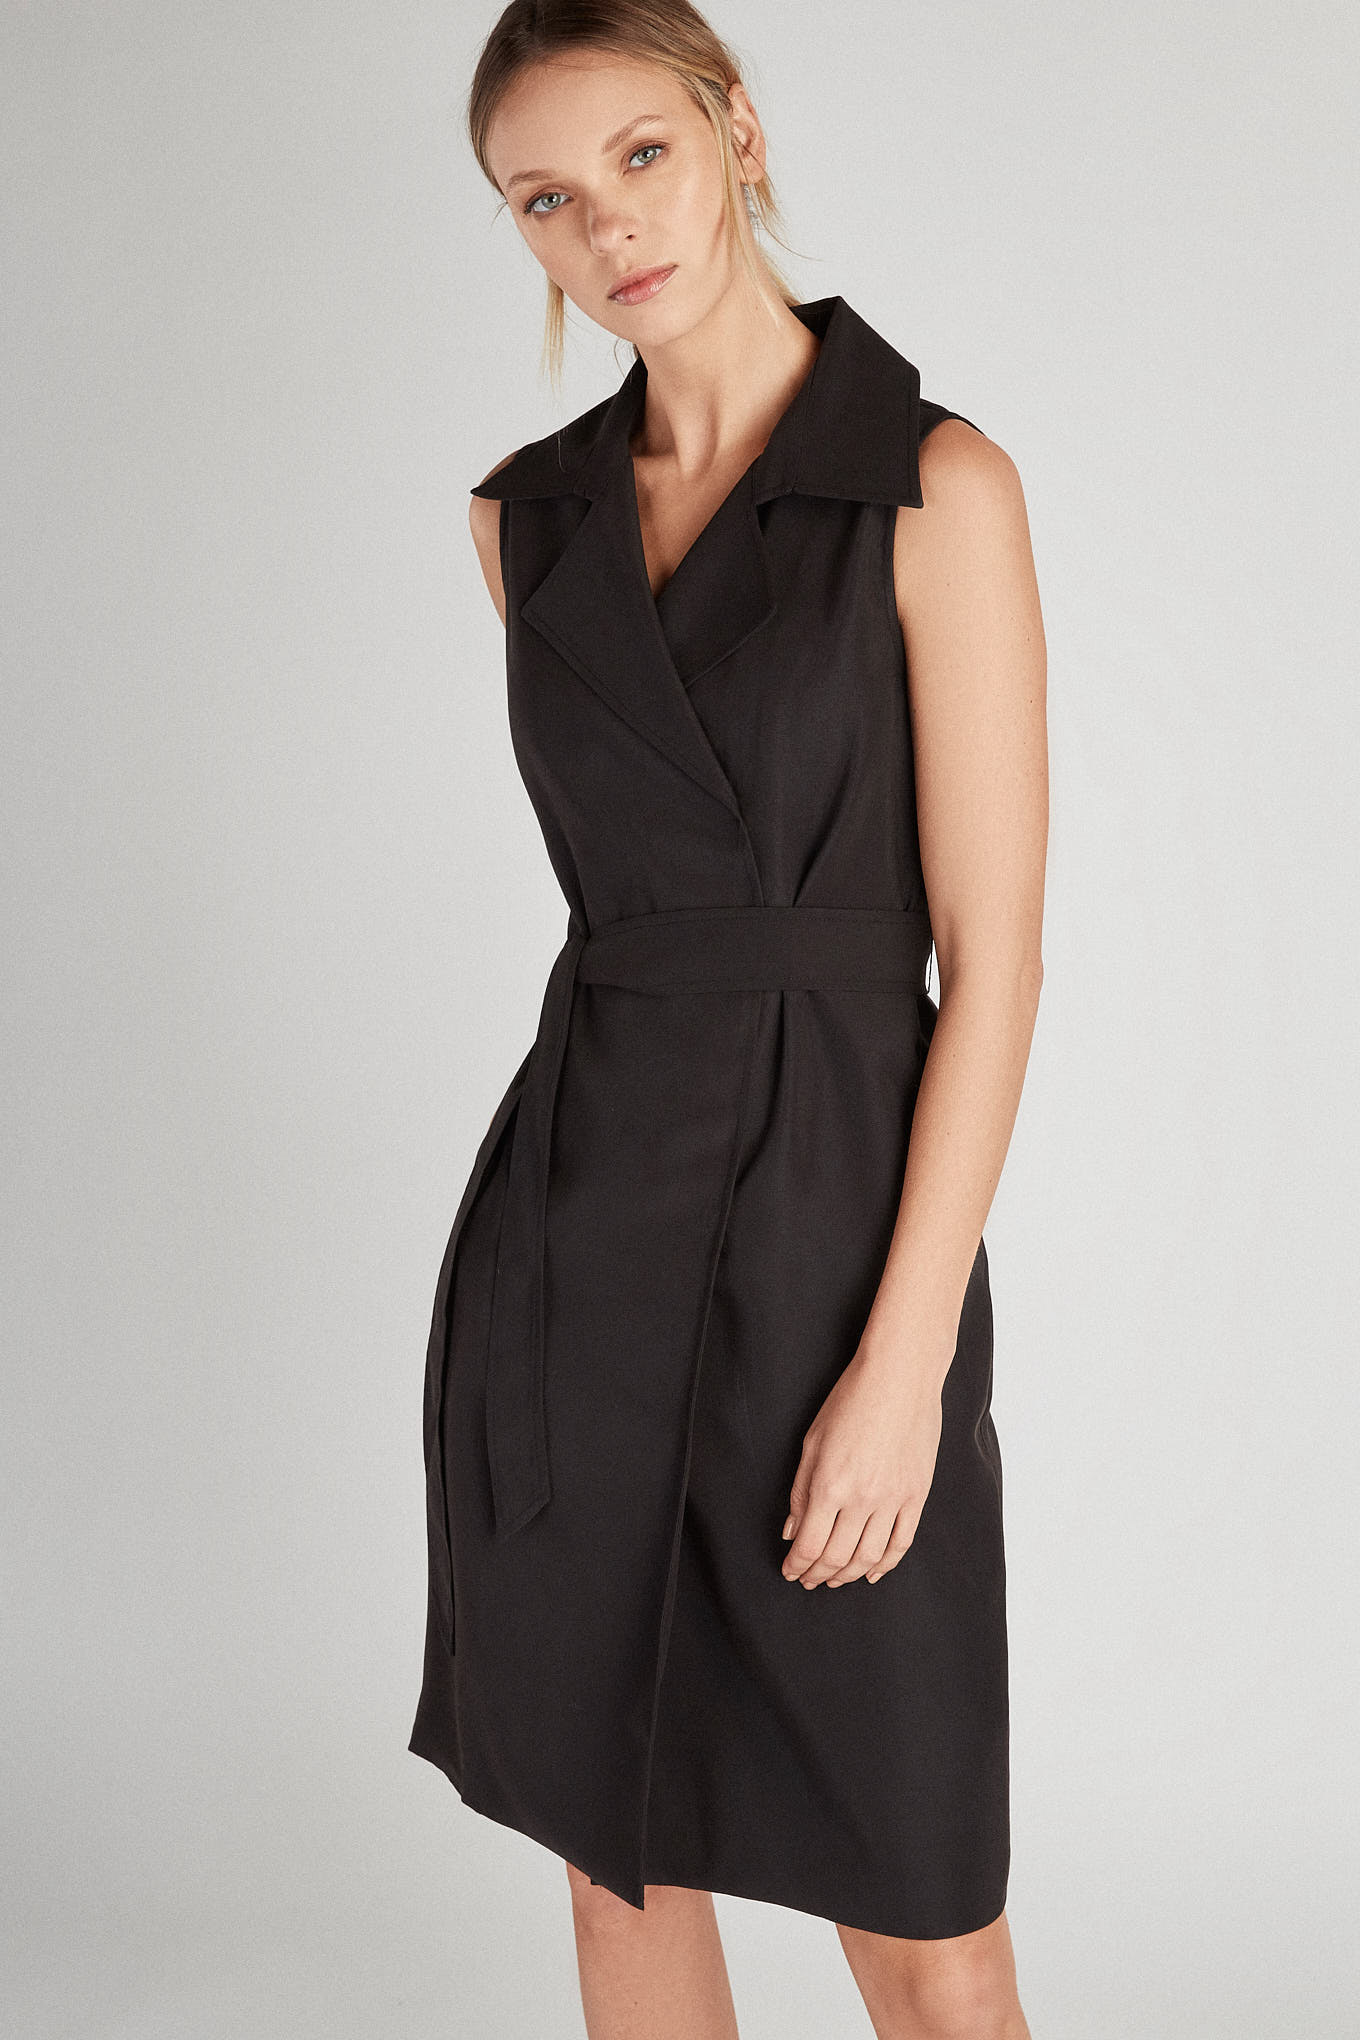 Dress Black Classic Woman